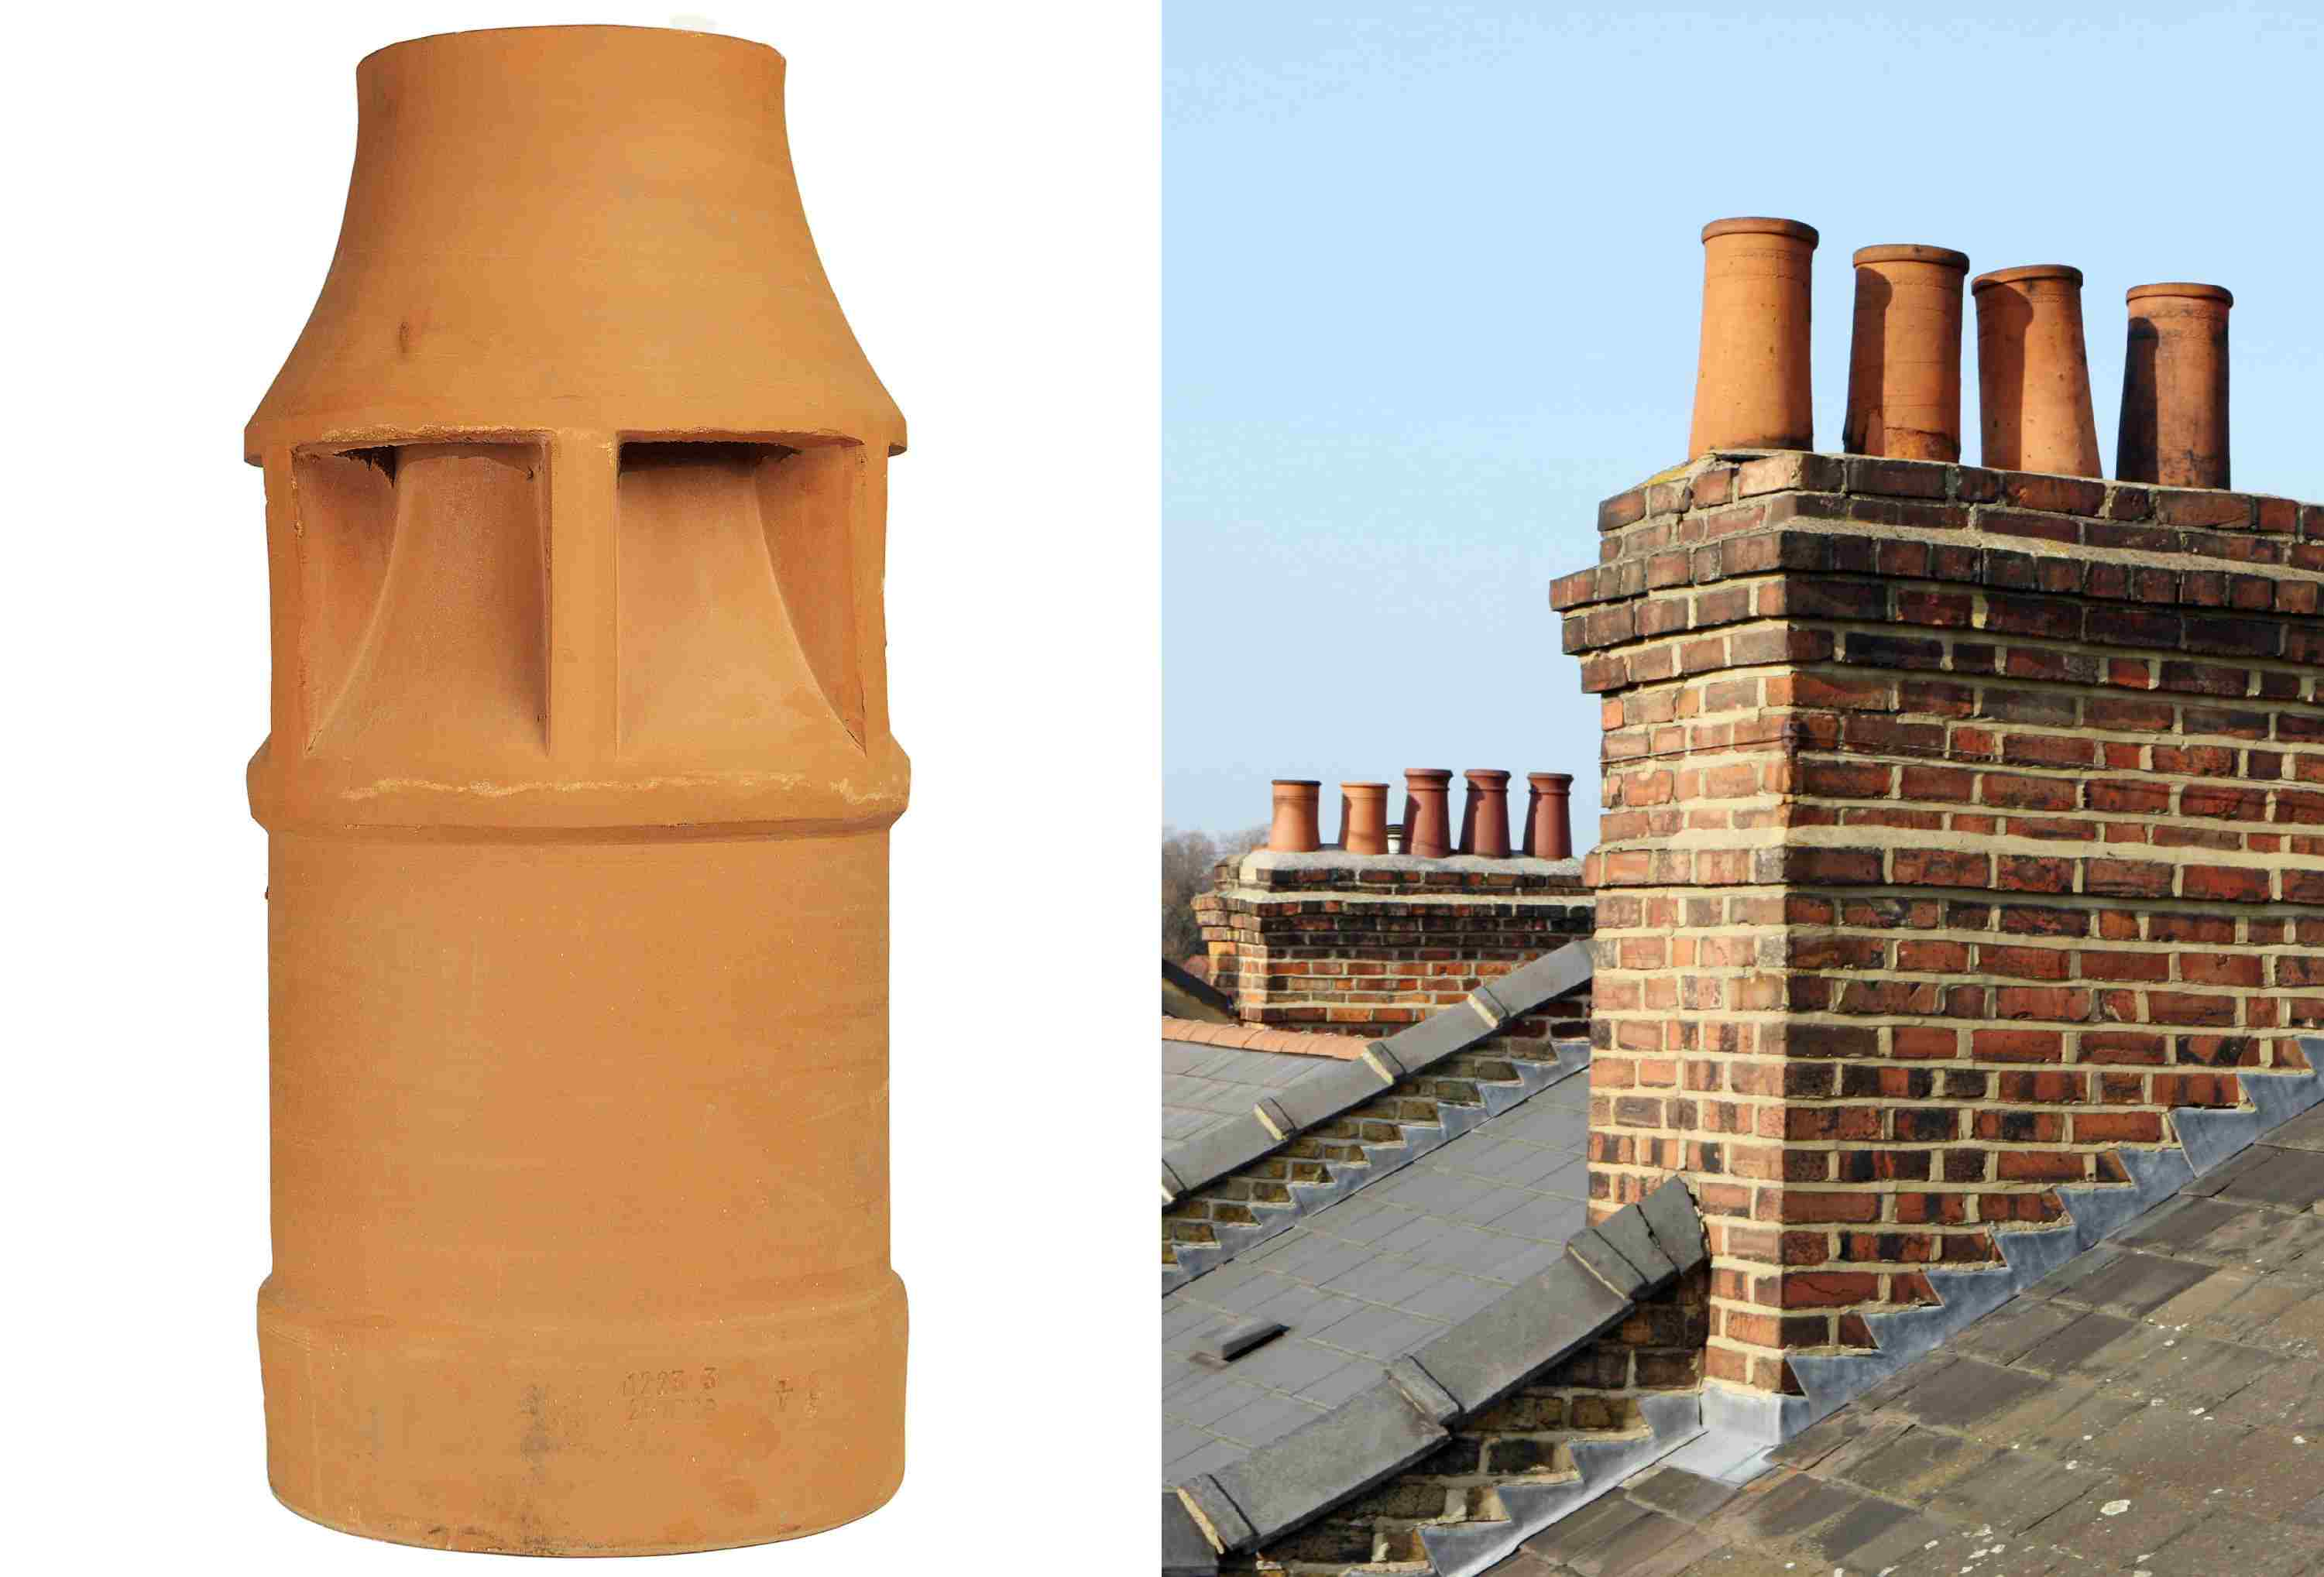 all about chimney pots - definitions and photos